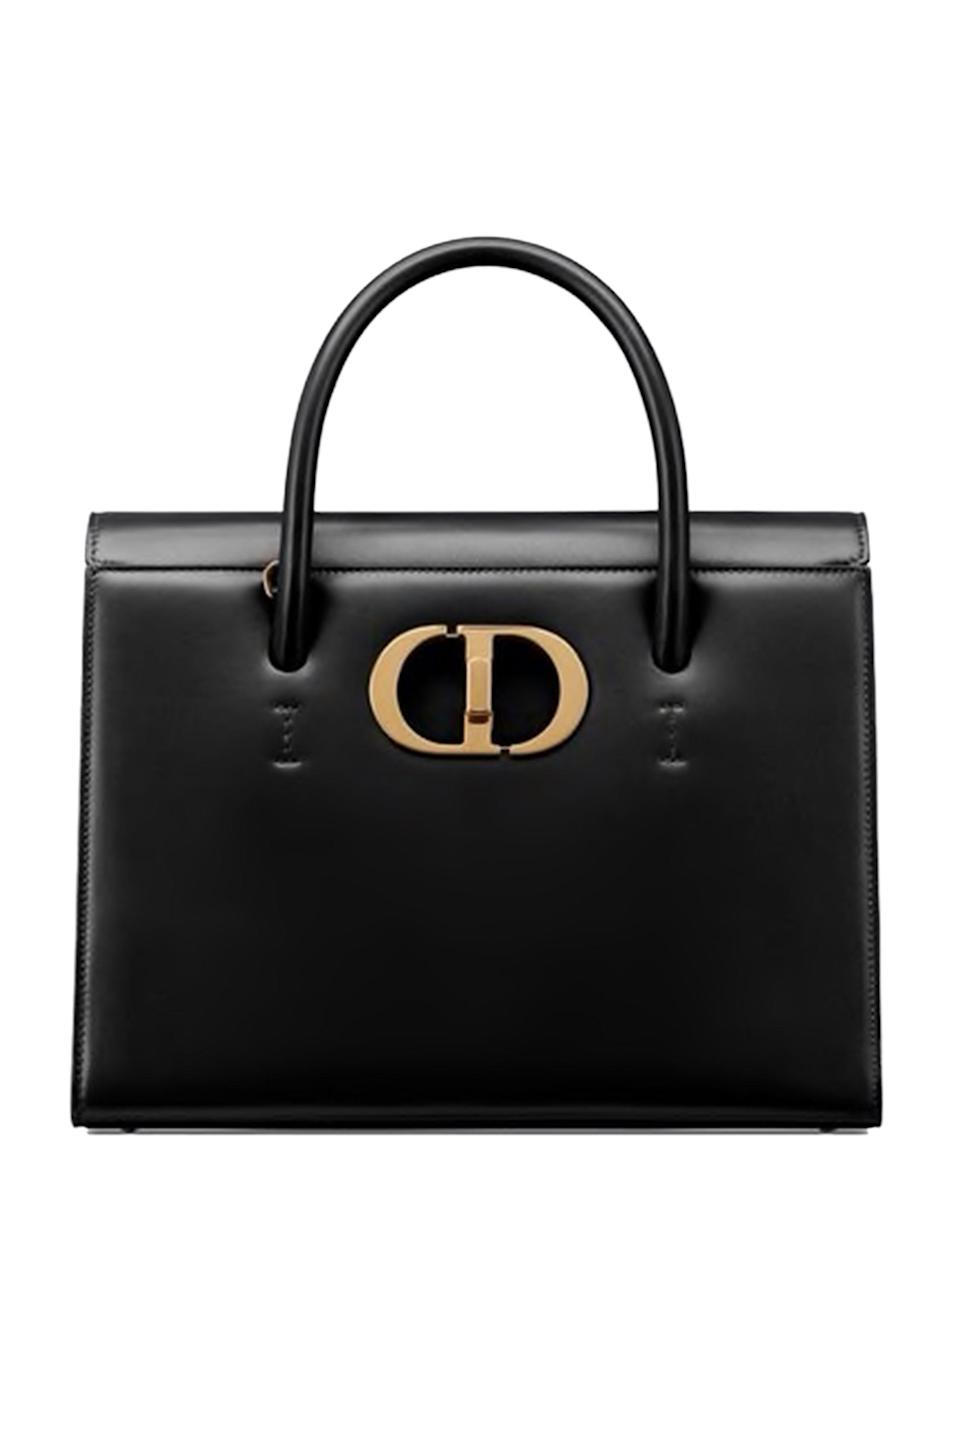 """<p><strong>Dior</strong></p><p>dior.com</p><p><strong>$4600.00</strong></p><p><a href=""""https://go.redirectingat.com?id=74968X1596630&url=https%3A%2F%2Fwww.dior.com%2Fen_us%2Fproducts%2Fcouture-M9306UMOS_M911-large-st-honore-tote-black-box-calfskin%3FobjectID%3DM9306UMOS_M911%26query%3DST%2BHONOR%25C3%2589%26queryID%3D75be32bedeb2433aa11e3ba242ee9378&sref=https%3A%2F%2Fwww.elle.com%2Ffashion%2Fshopping%2Fg34551759%2Ffall-investment-bags-2020%2F"""" rel=""""nofollow noopener"""" target=""""_blank"""" data-ylk=""""slk:Shop Now"""" class=""""link rapid-noclick-resp"""">Shop Now</a></p><p>Dior did not come to play with its newest bag, the St. Honoré. It's business in the front, and downtown party in the back, with '30 Montaigne' embossed on the posterior. </p>"""